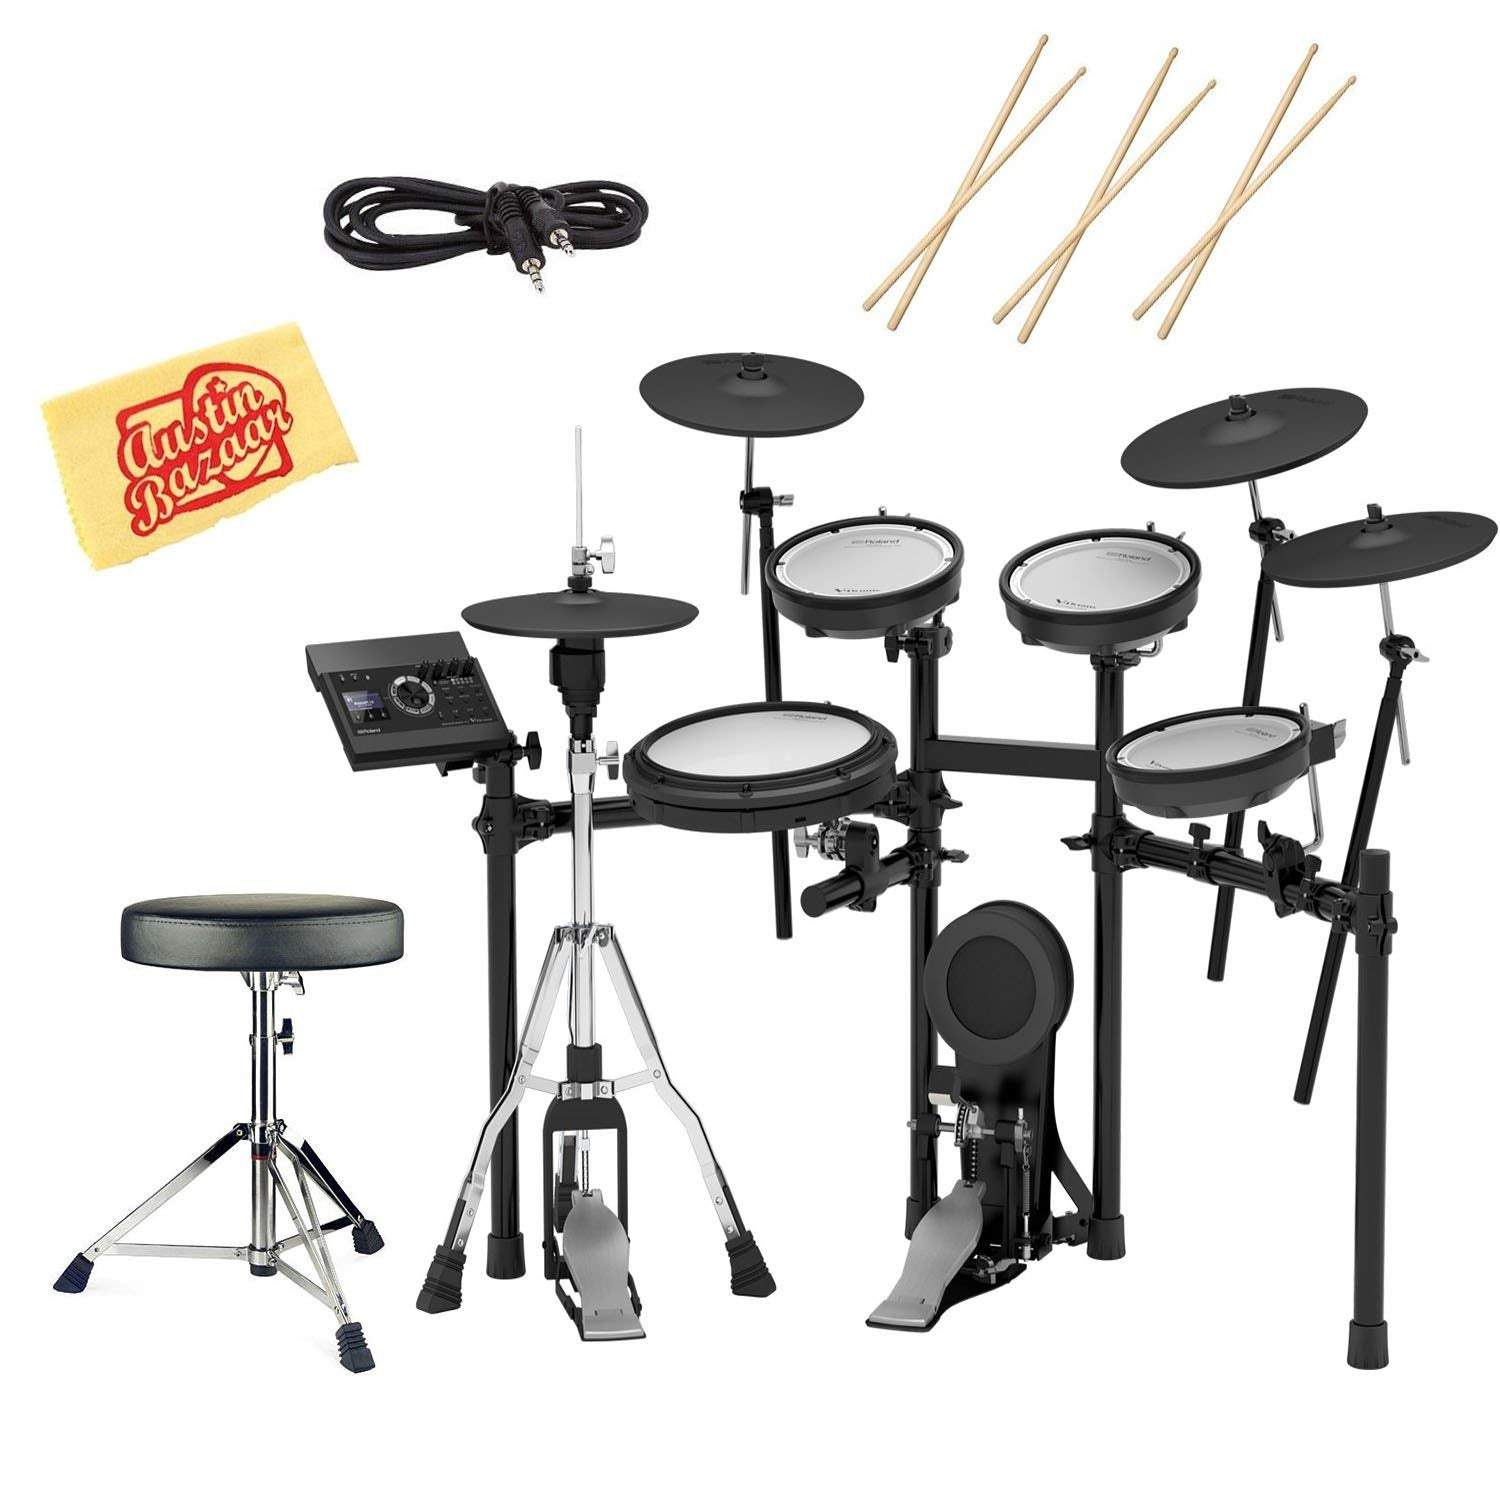 Roland TD-17KVX Electronic Drum Set Bundle with Drum Throne, 3 Pairs of  Sticks, Audio Cable, and Austin Bazaar Polishing Cloth